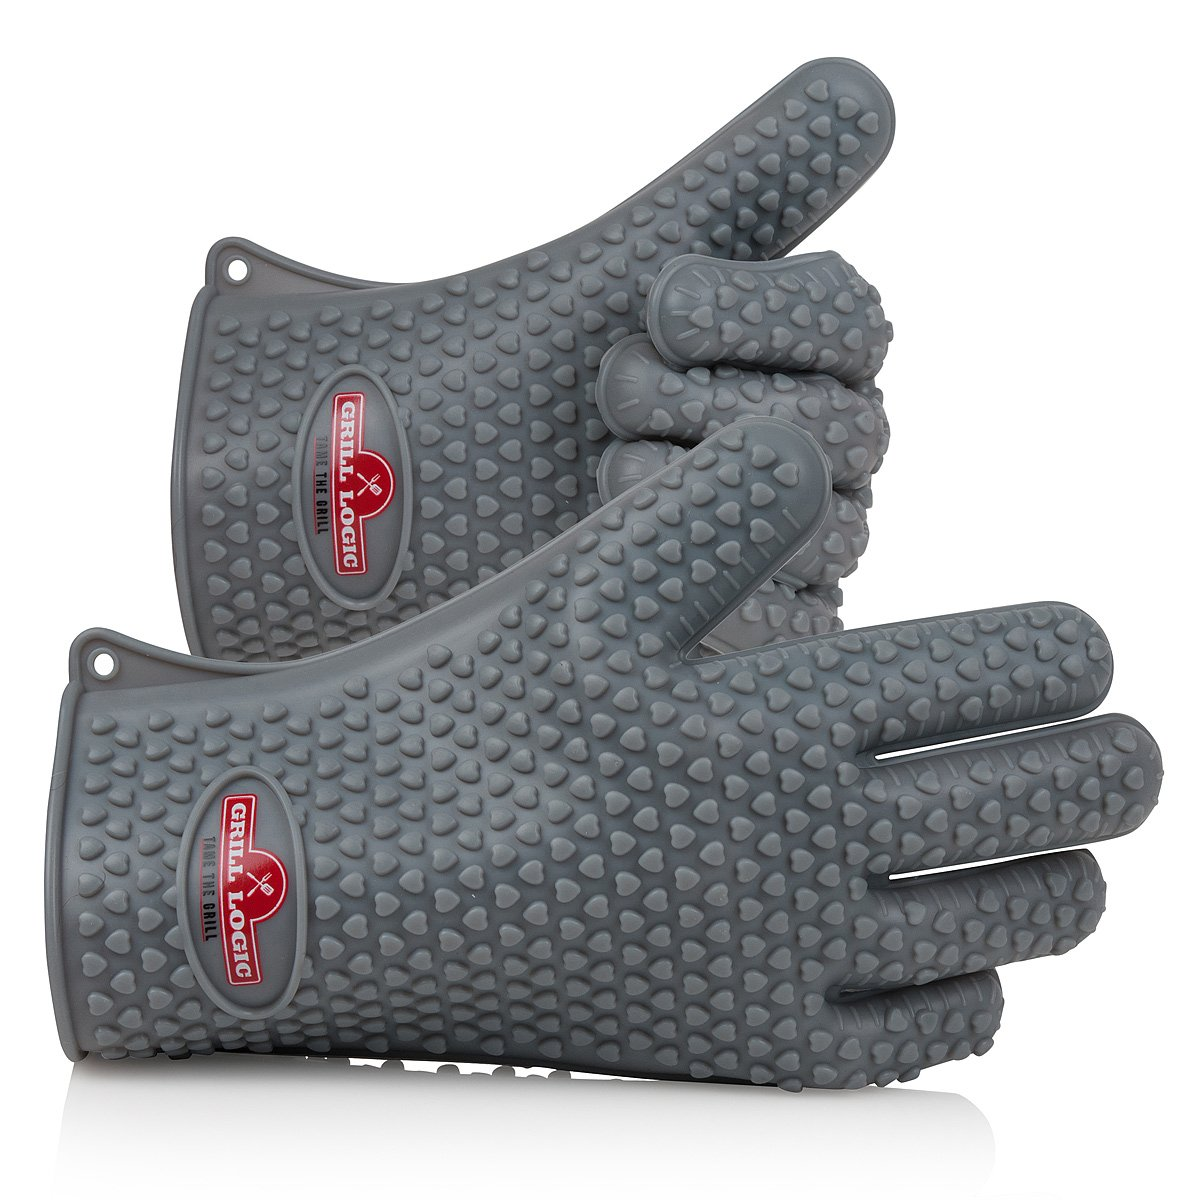 Grill Logic - Heat Resistant Silicone BBQ Gloves One Size Fits Most